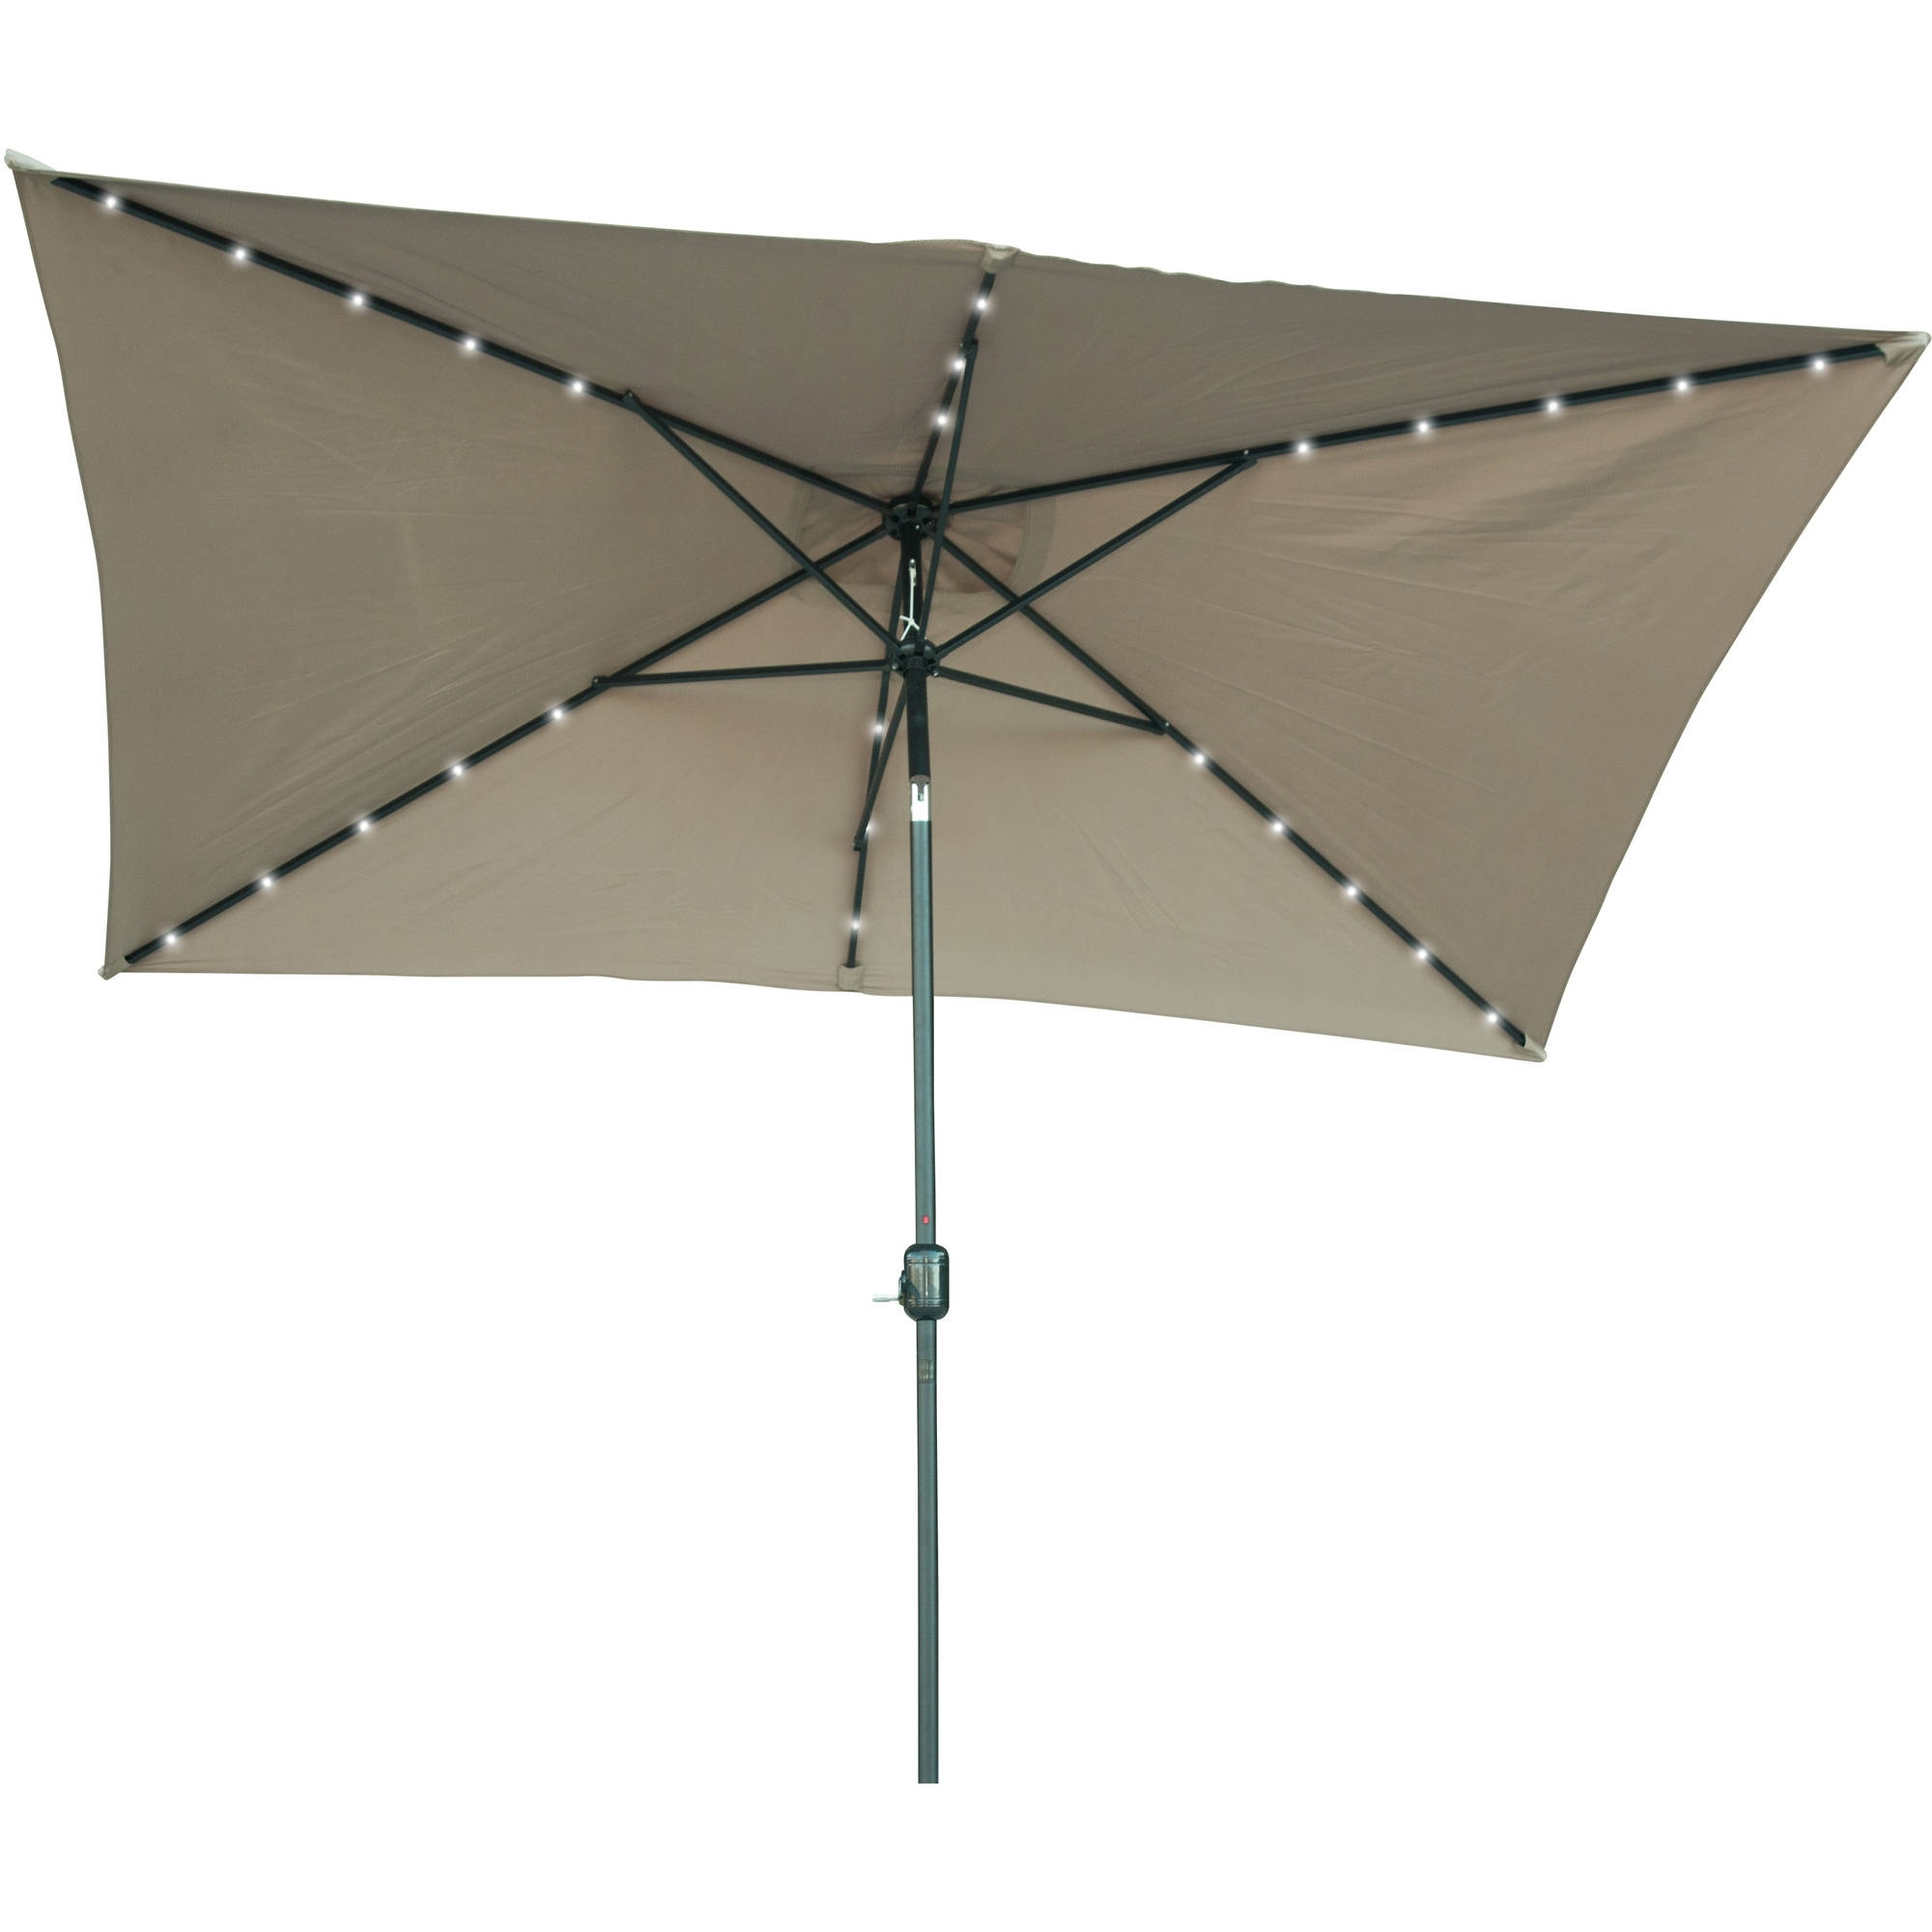 Rectangular Solar Powered Led Lighted Patio Umbrella – 10' X (View 13 of 20)